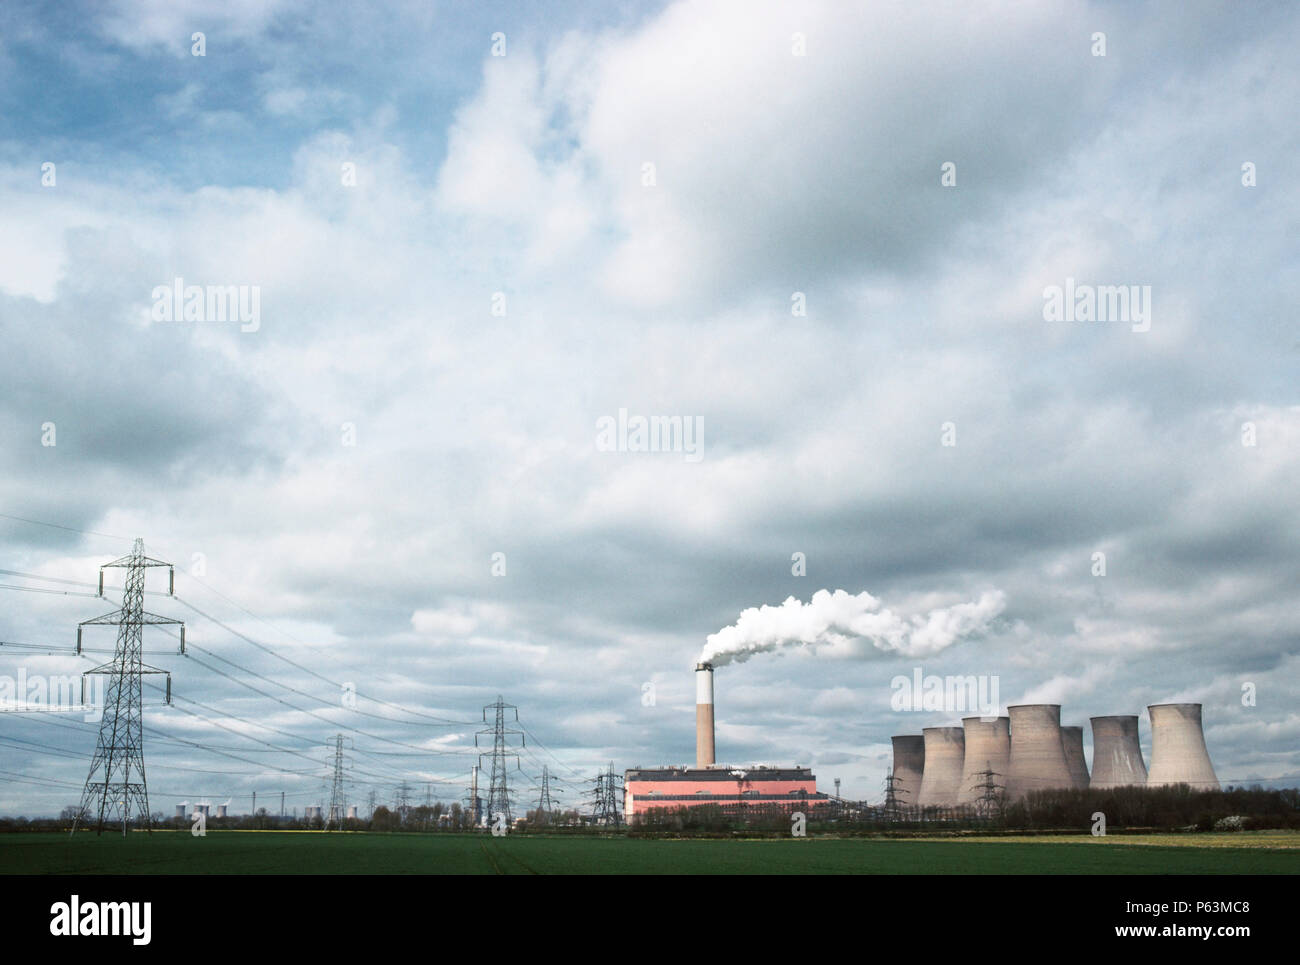 Coal fired power station on the Trent river at Cottam, Nottinghamshire. West Burton power station is in the background in the distance, England, UK - Stock Image